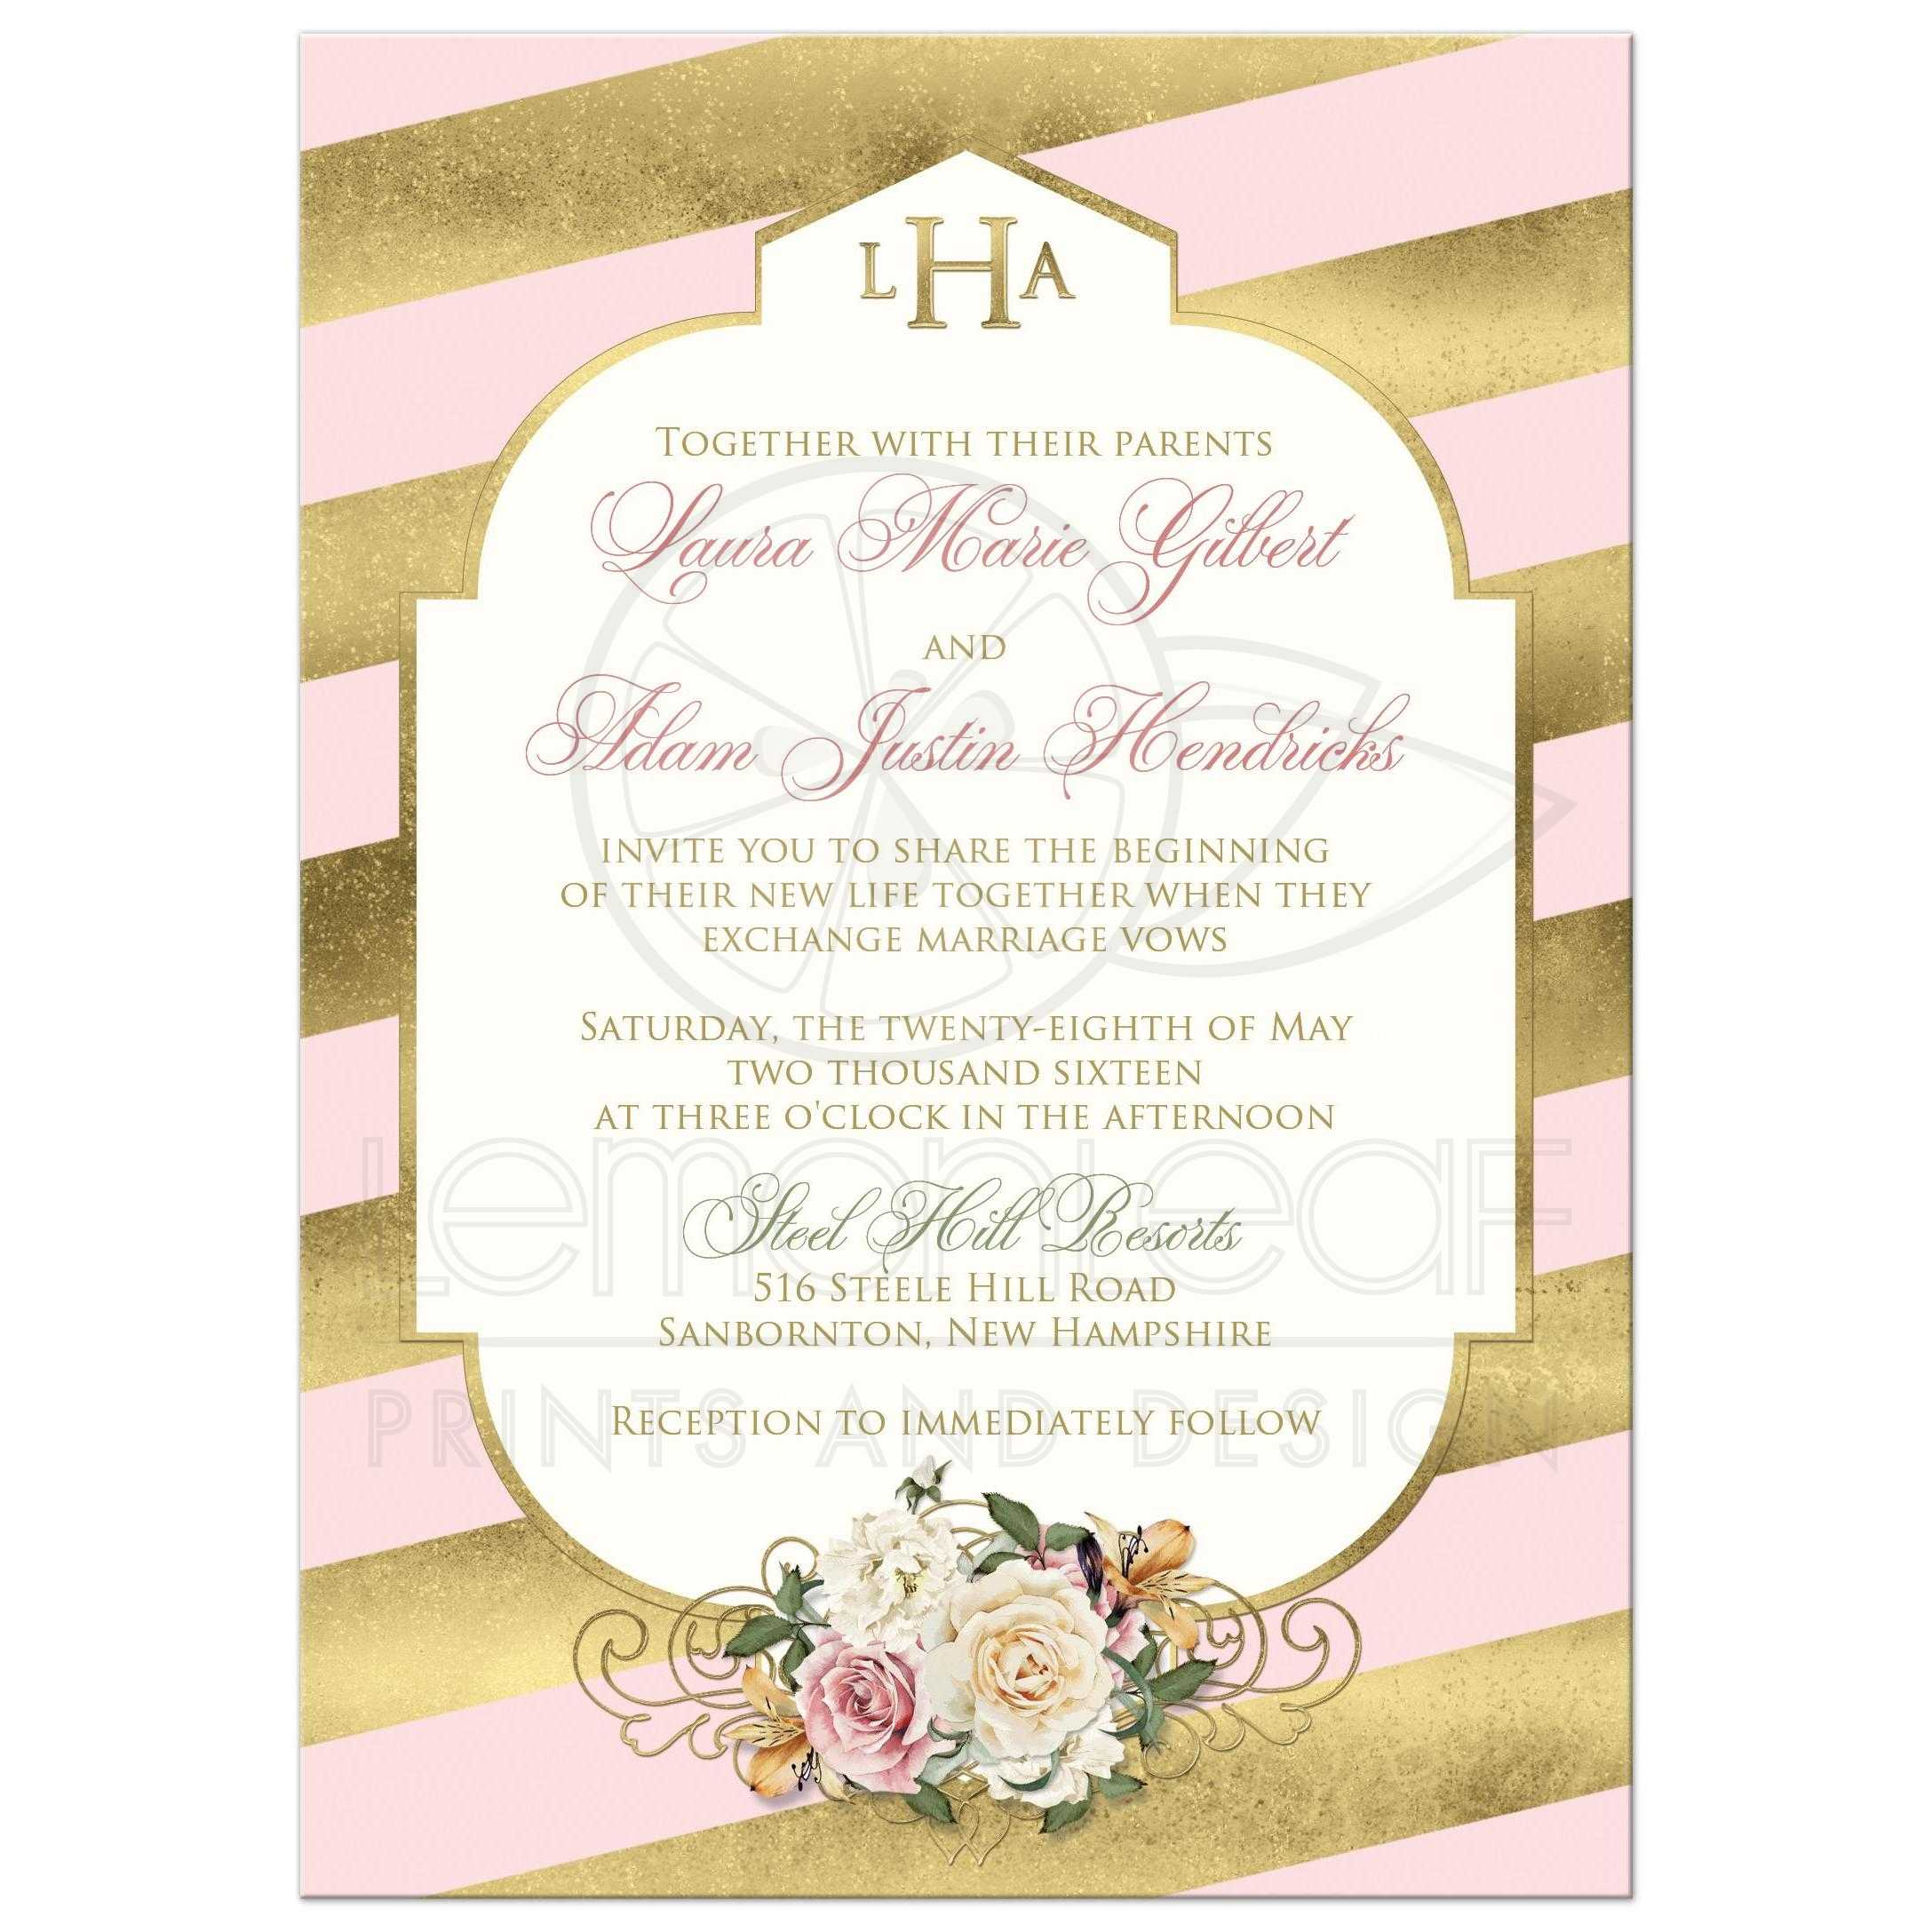 Great Monogrammed Blush Pink And Gold Striped Art Deco Wedding Invitation With Ivory Roses: Ivory Deco Wedding Invitations At Websimilar.org